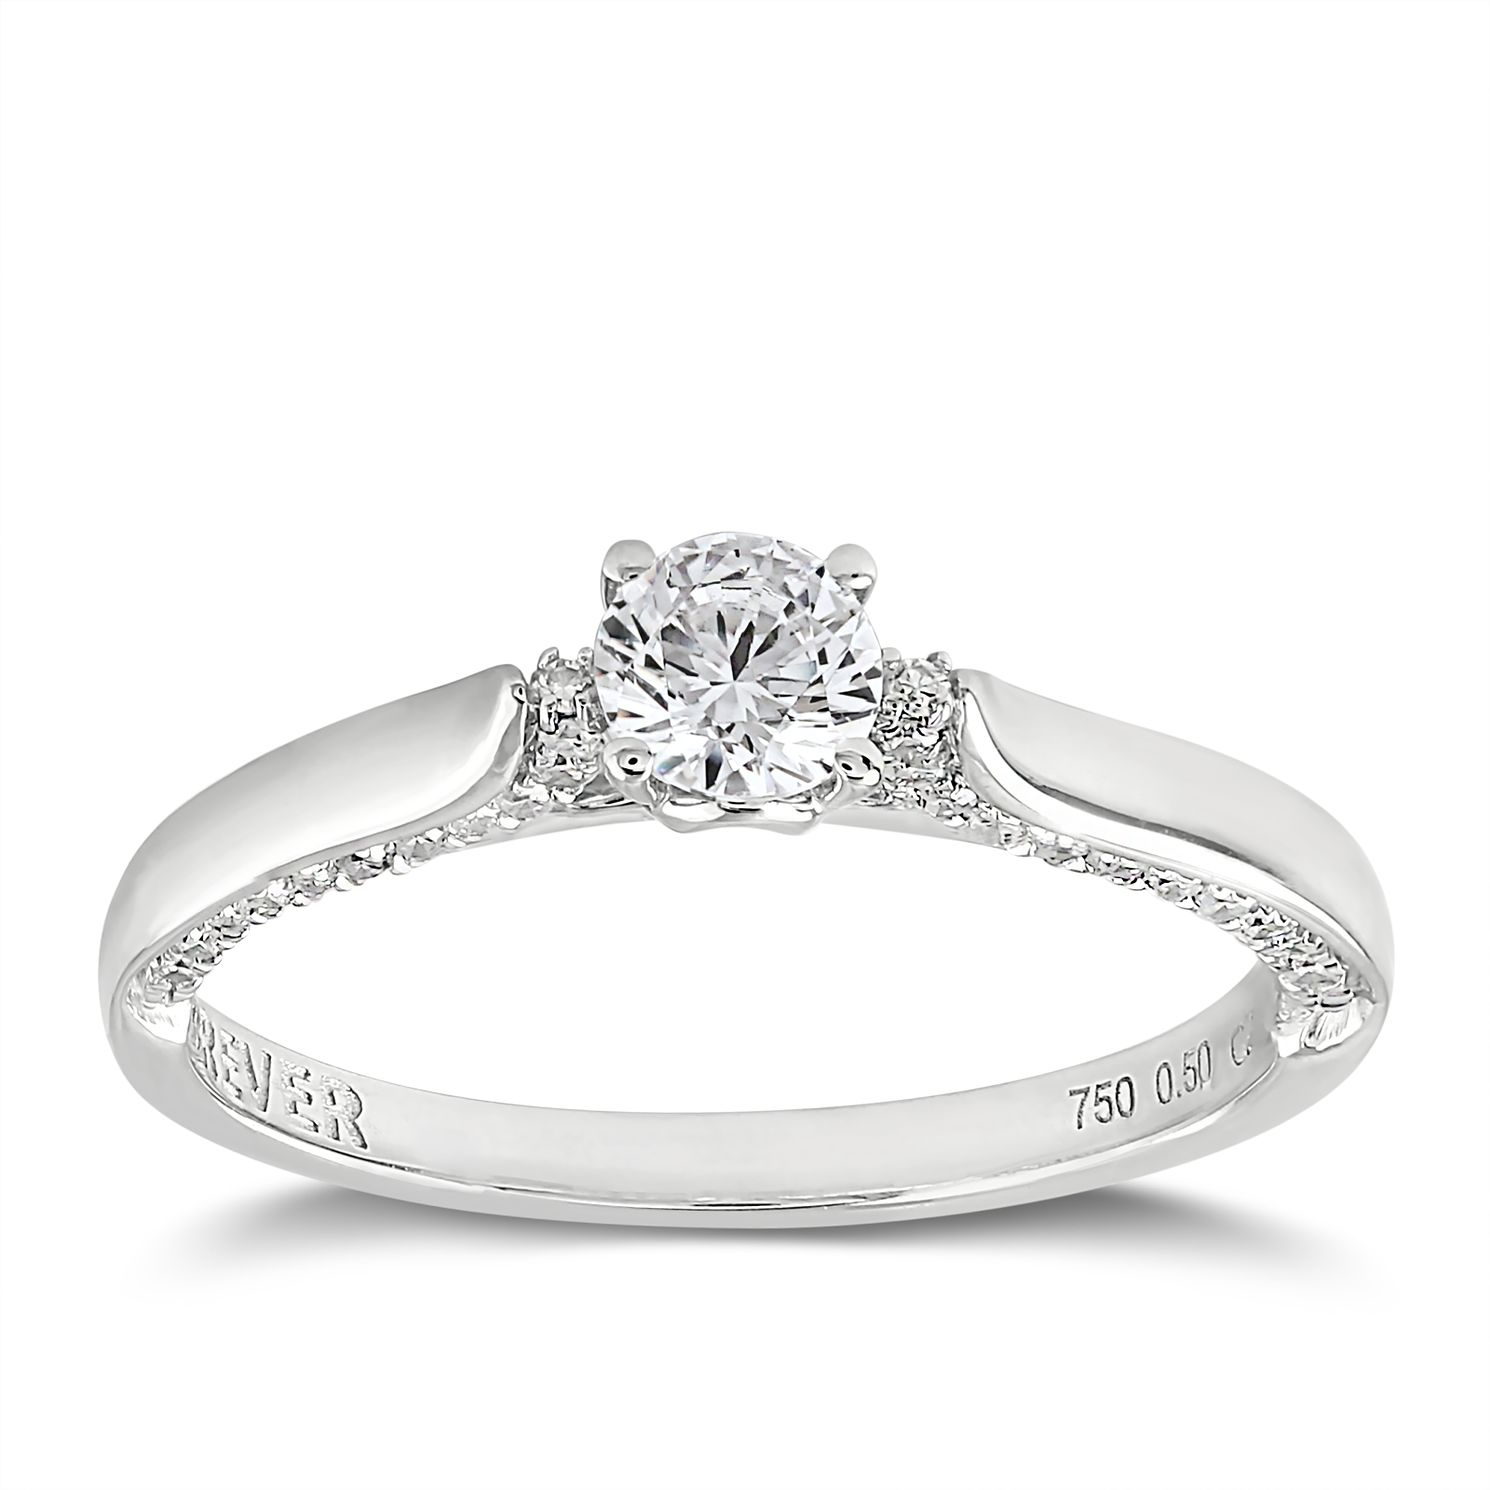 Forever Diamond 18ct White Gold 1/2ct Solitaire Diamond Ring - Product number 2095521